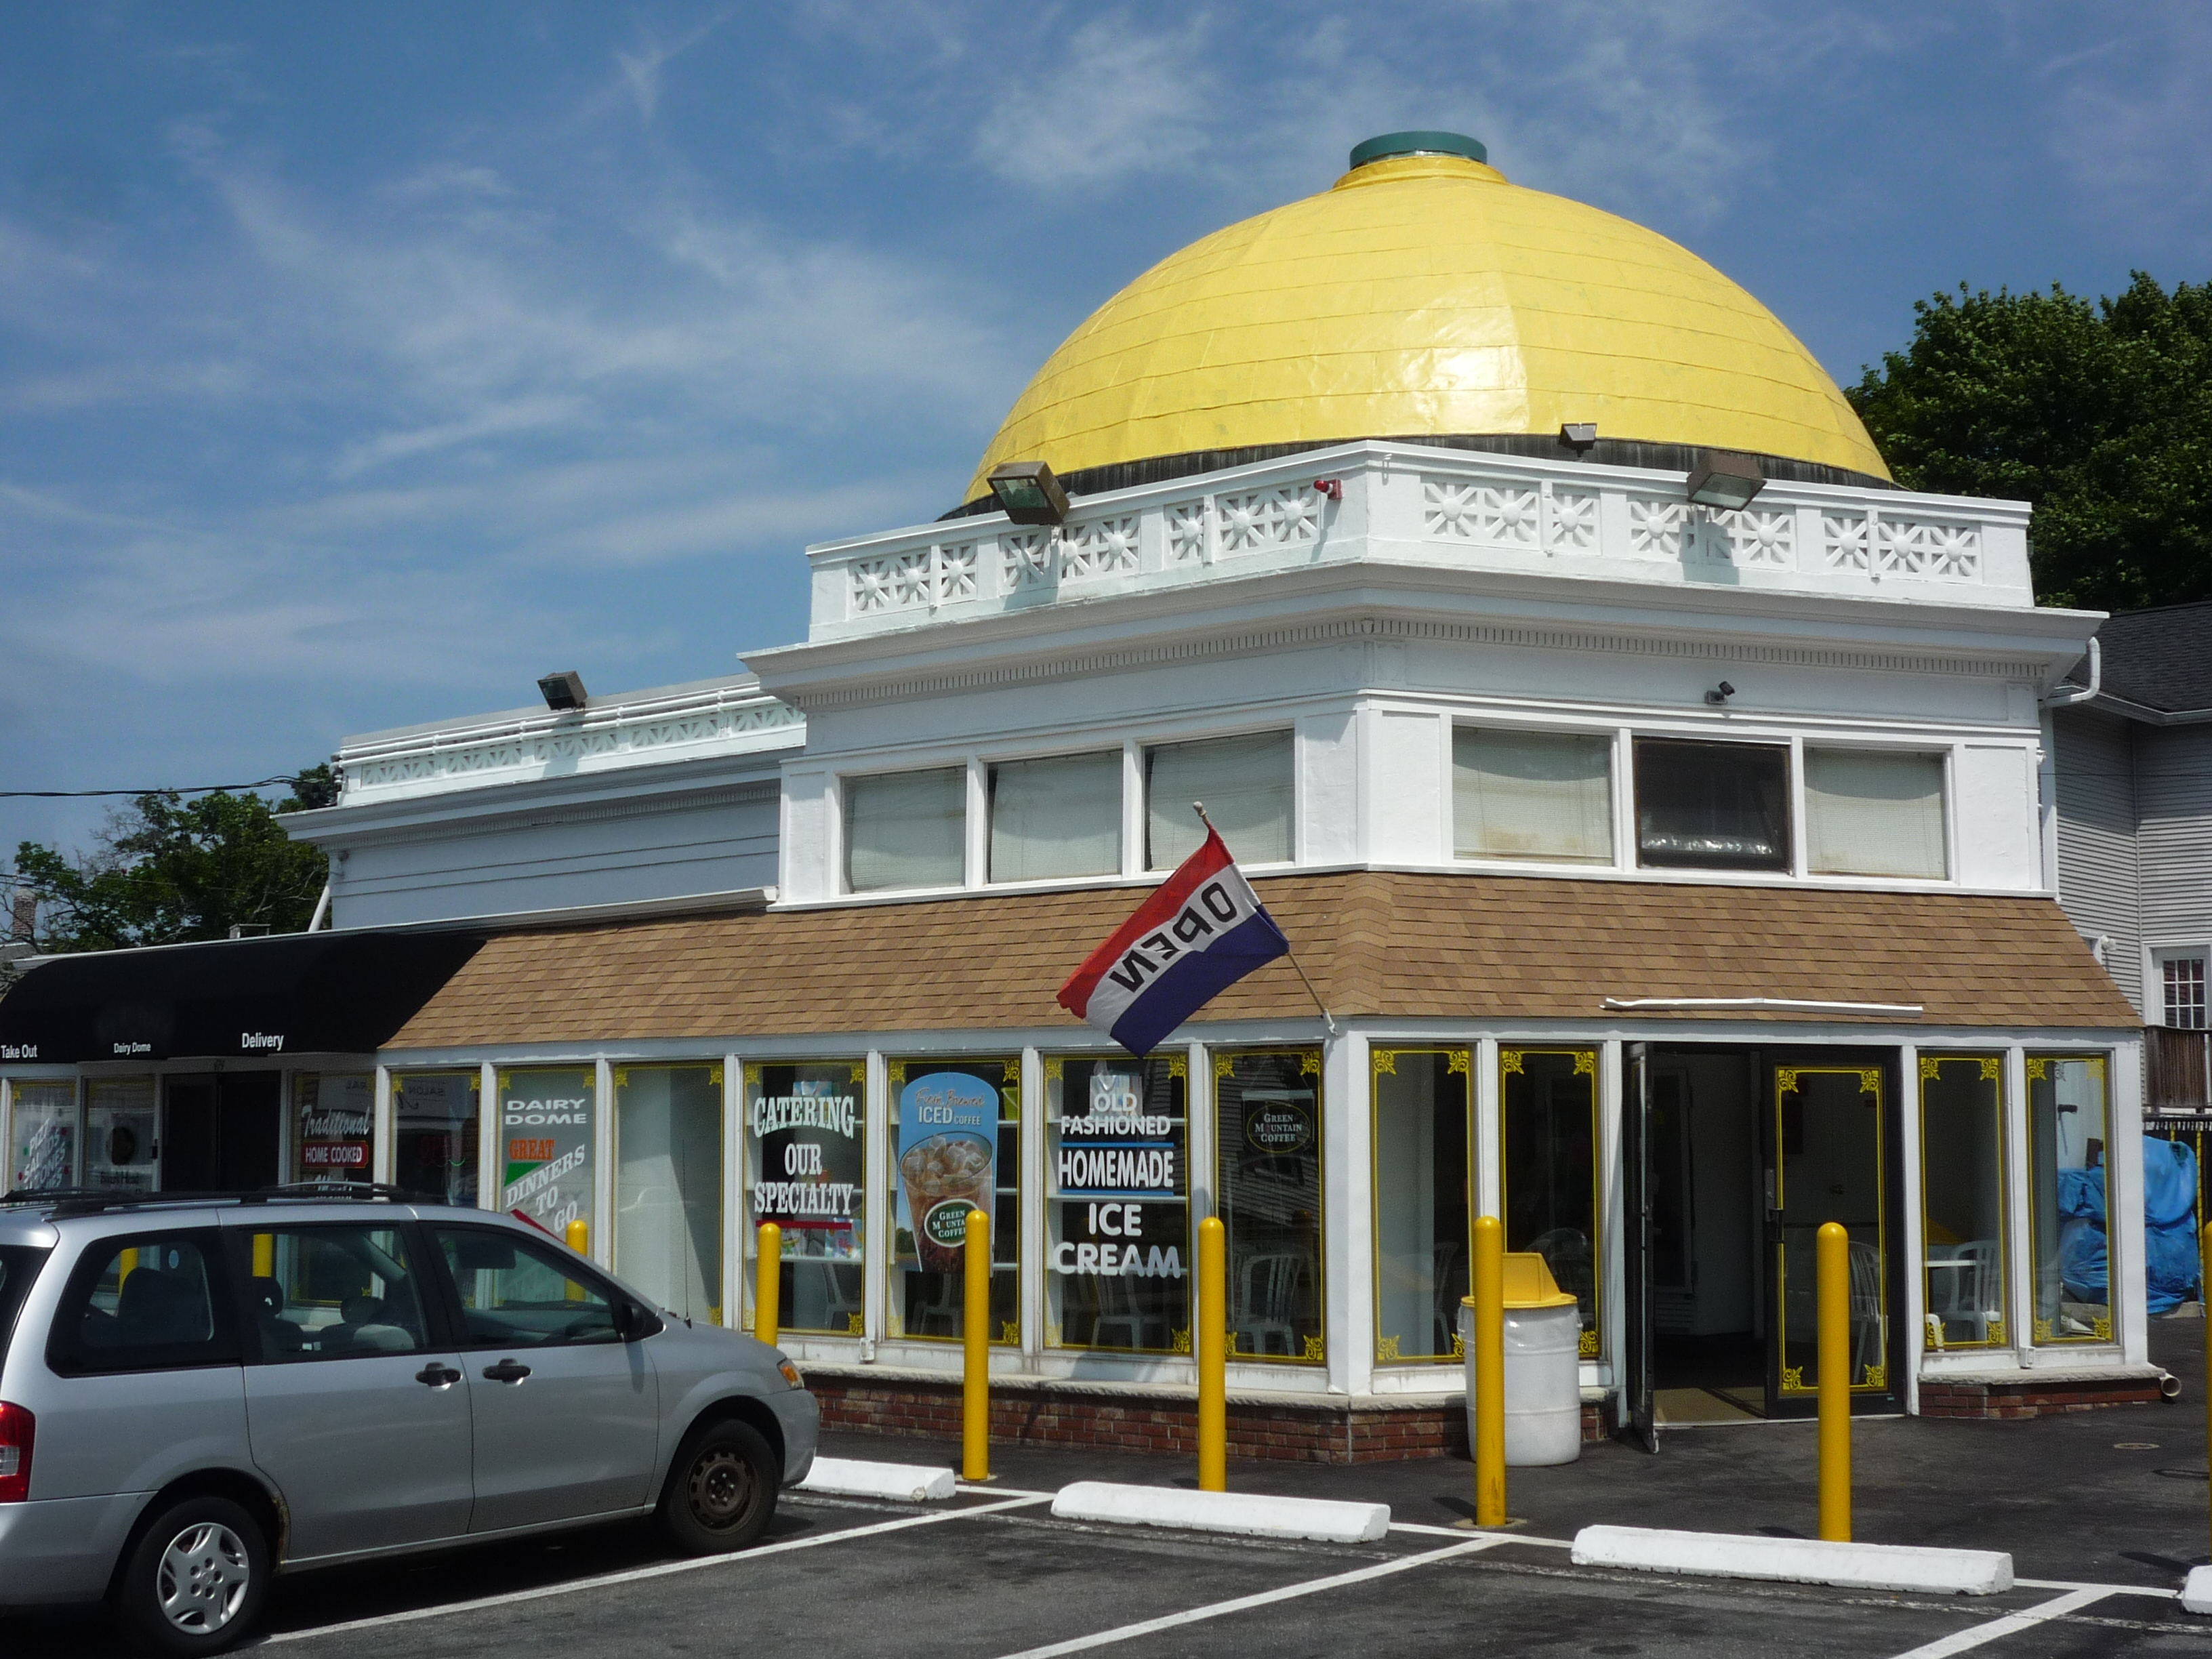 Revisiting The Dairy Dome in Stoneham, Mass.